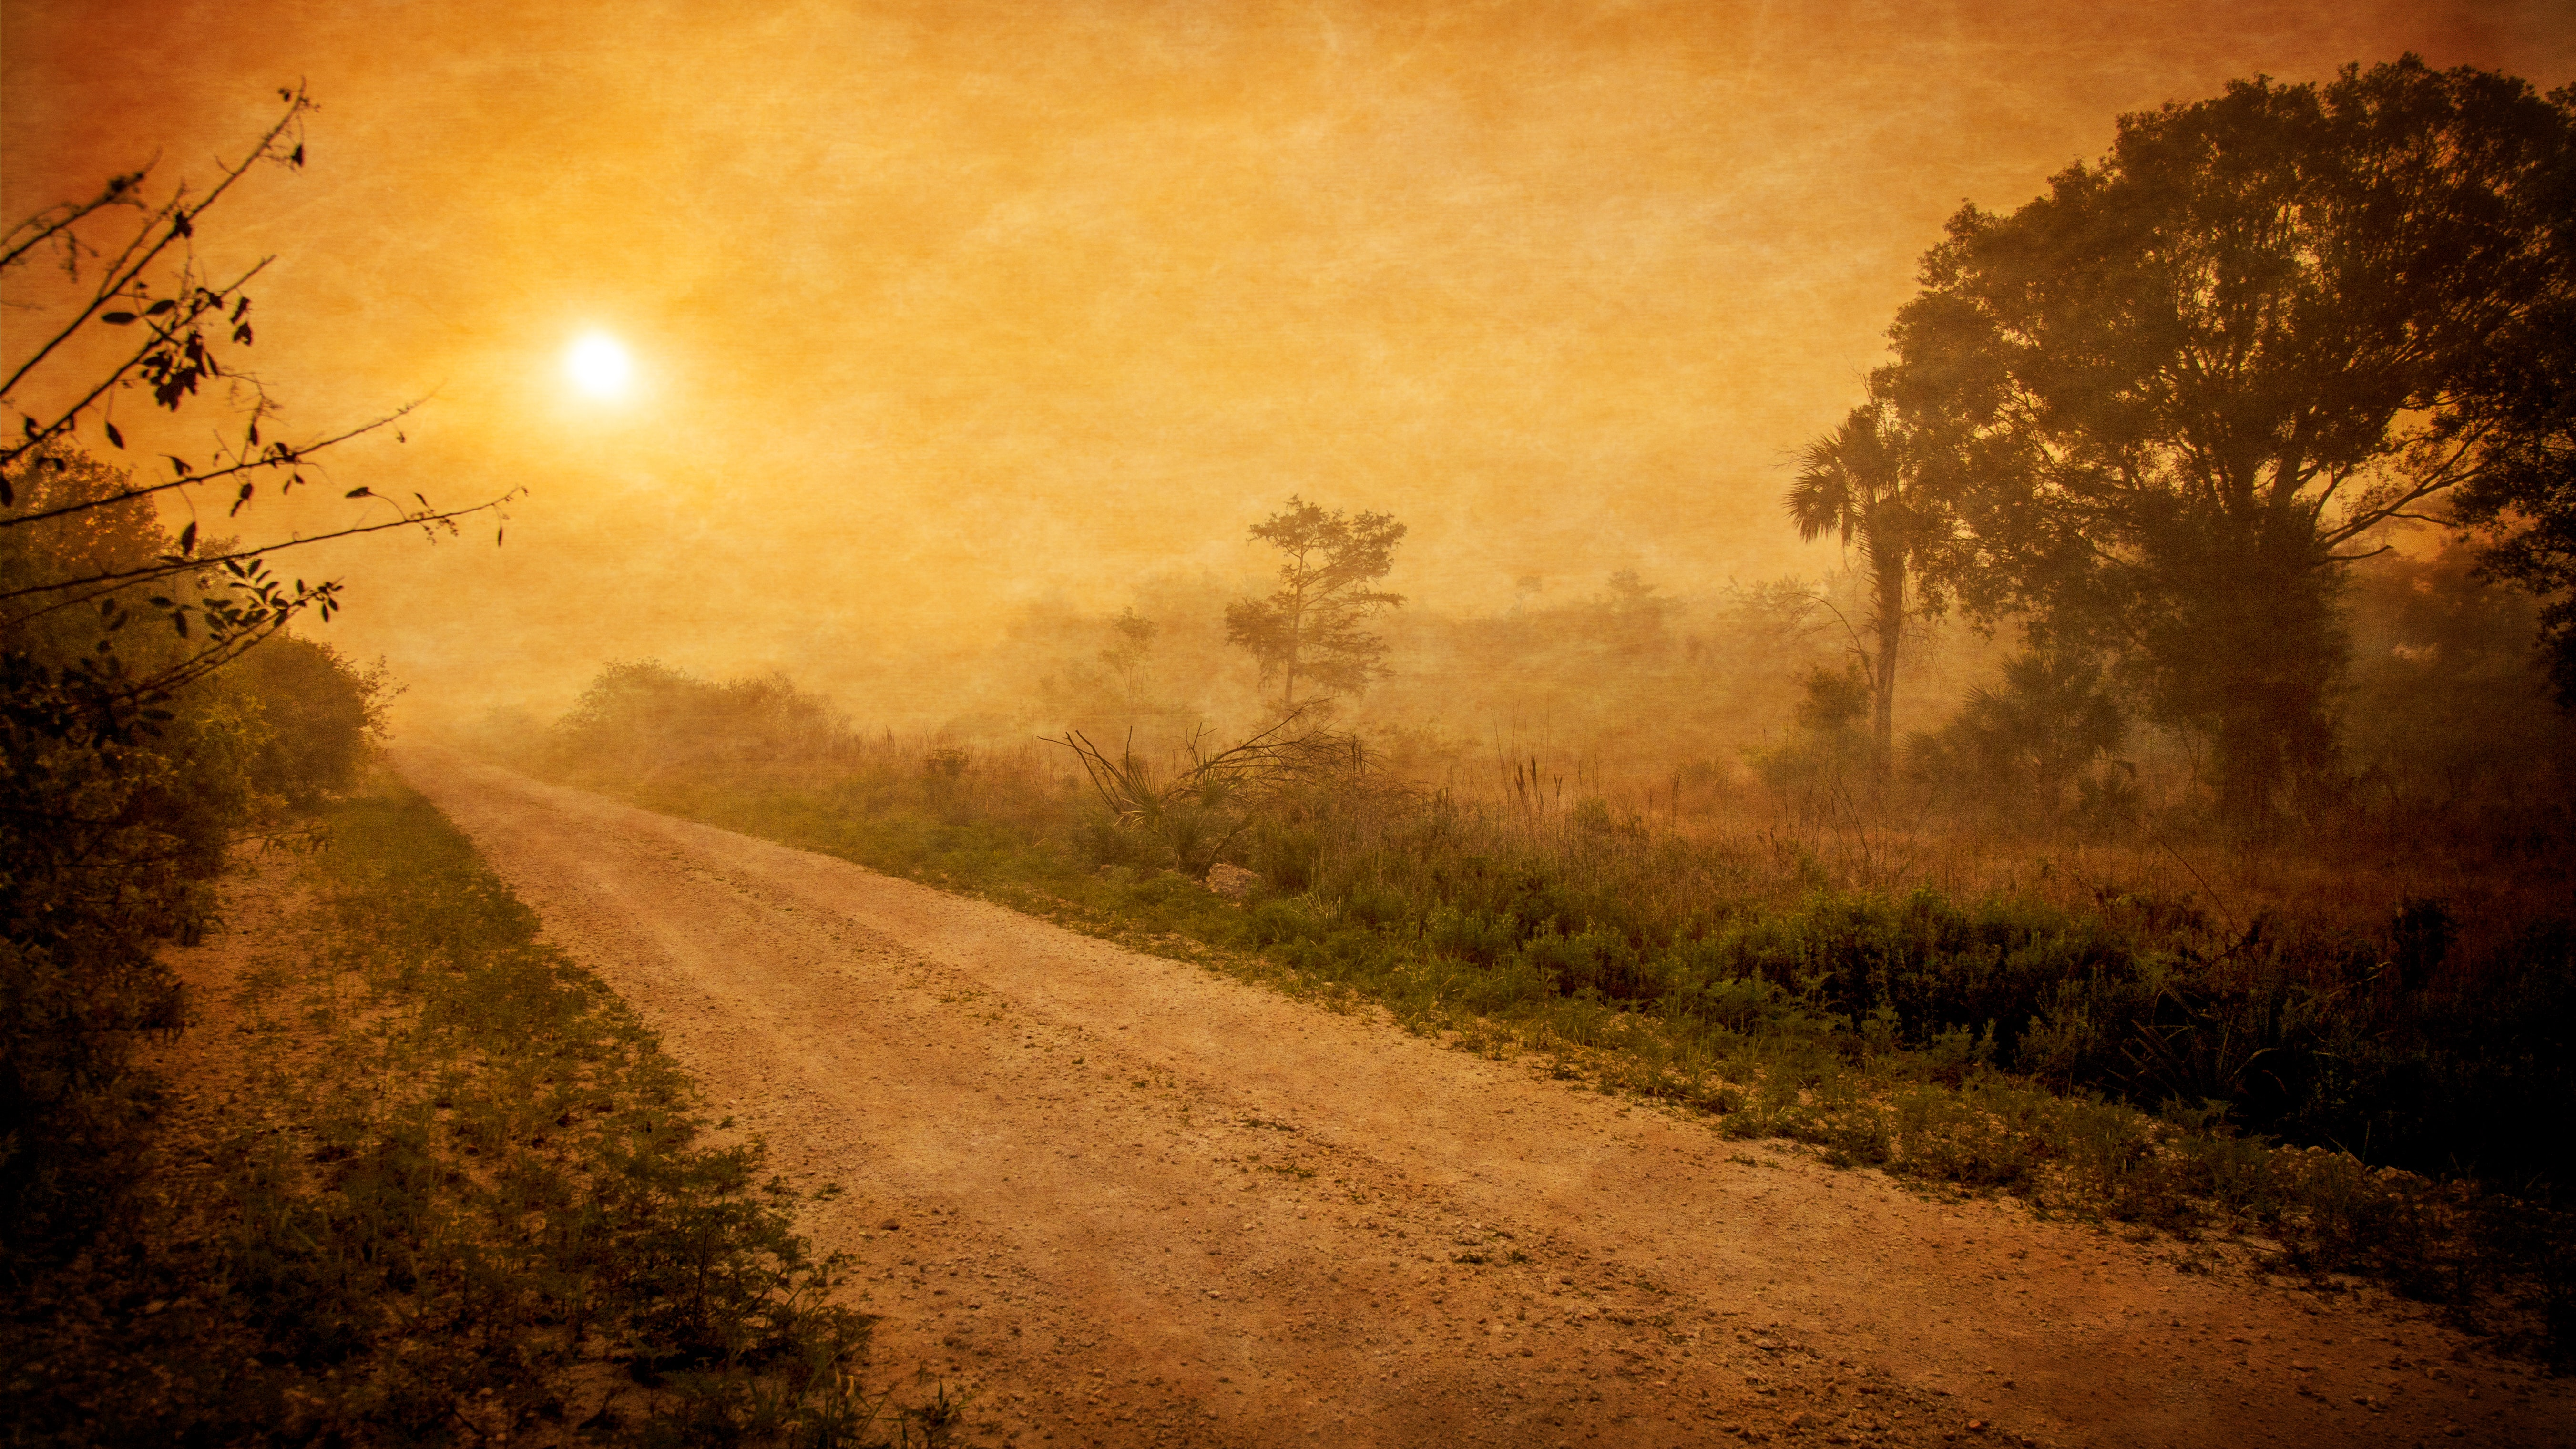 Slowly setting sun over a dirt road in the wilderness